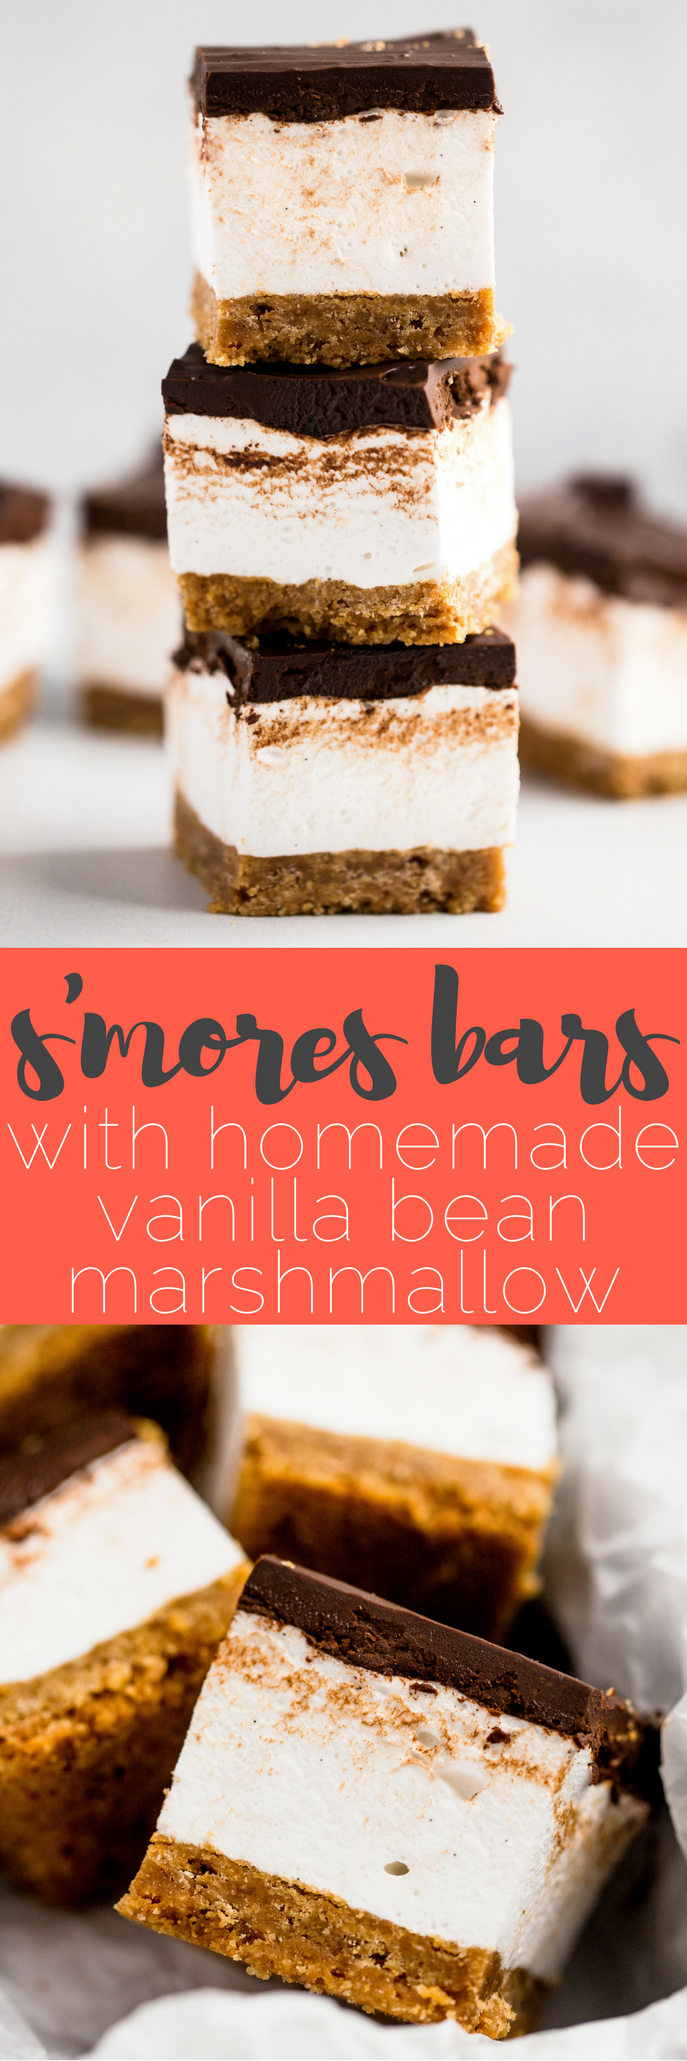 everyone's childhood summer favorite gets a major update in this recipe for s'mores bars. these s'mores bars sandwich a thick layer of fluffy homemade vanilla bean marshmallow in between graham cracker crust & salted dark chocolate ganache. your favorite campfire treat will never be the same!